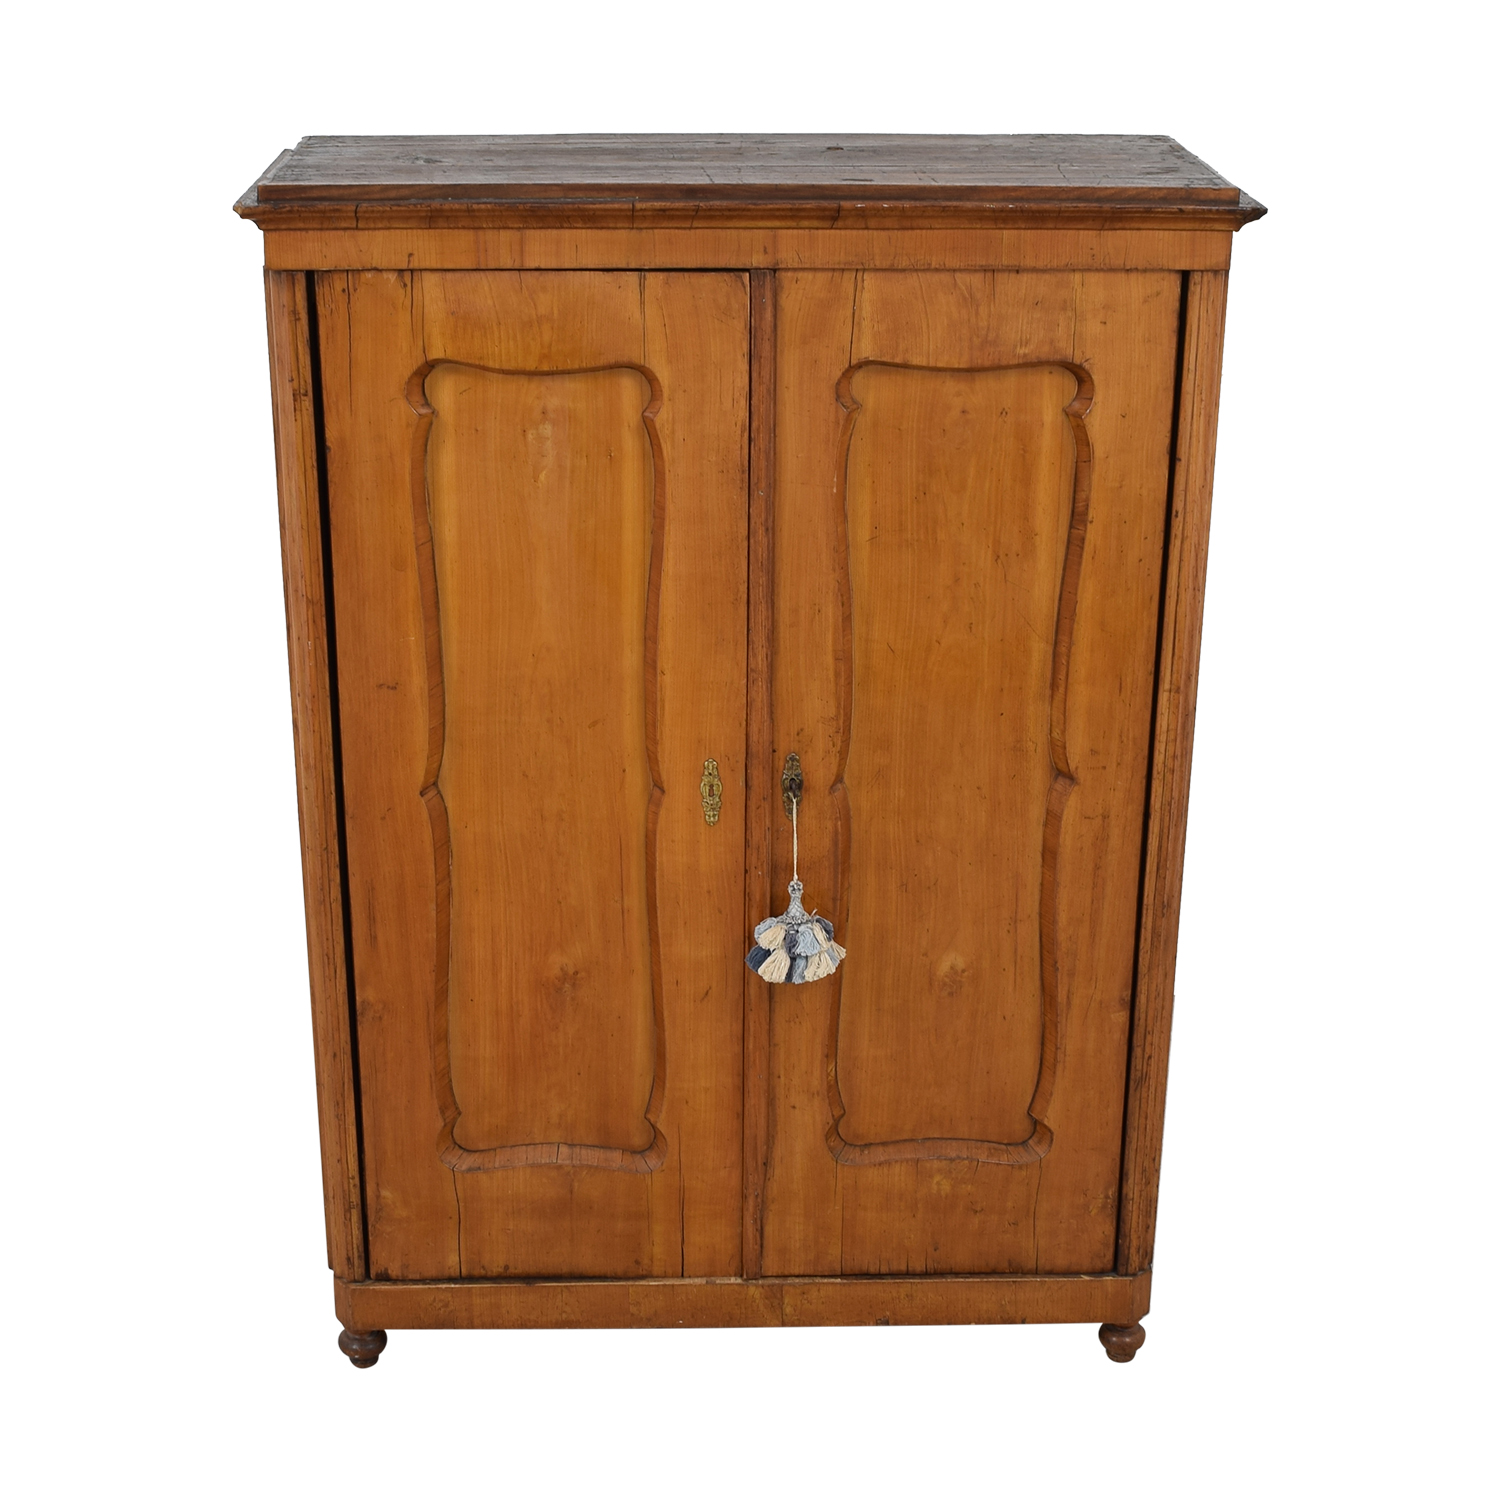 Wood Wardrobe Armoire with Shelves dimensions